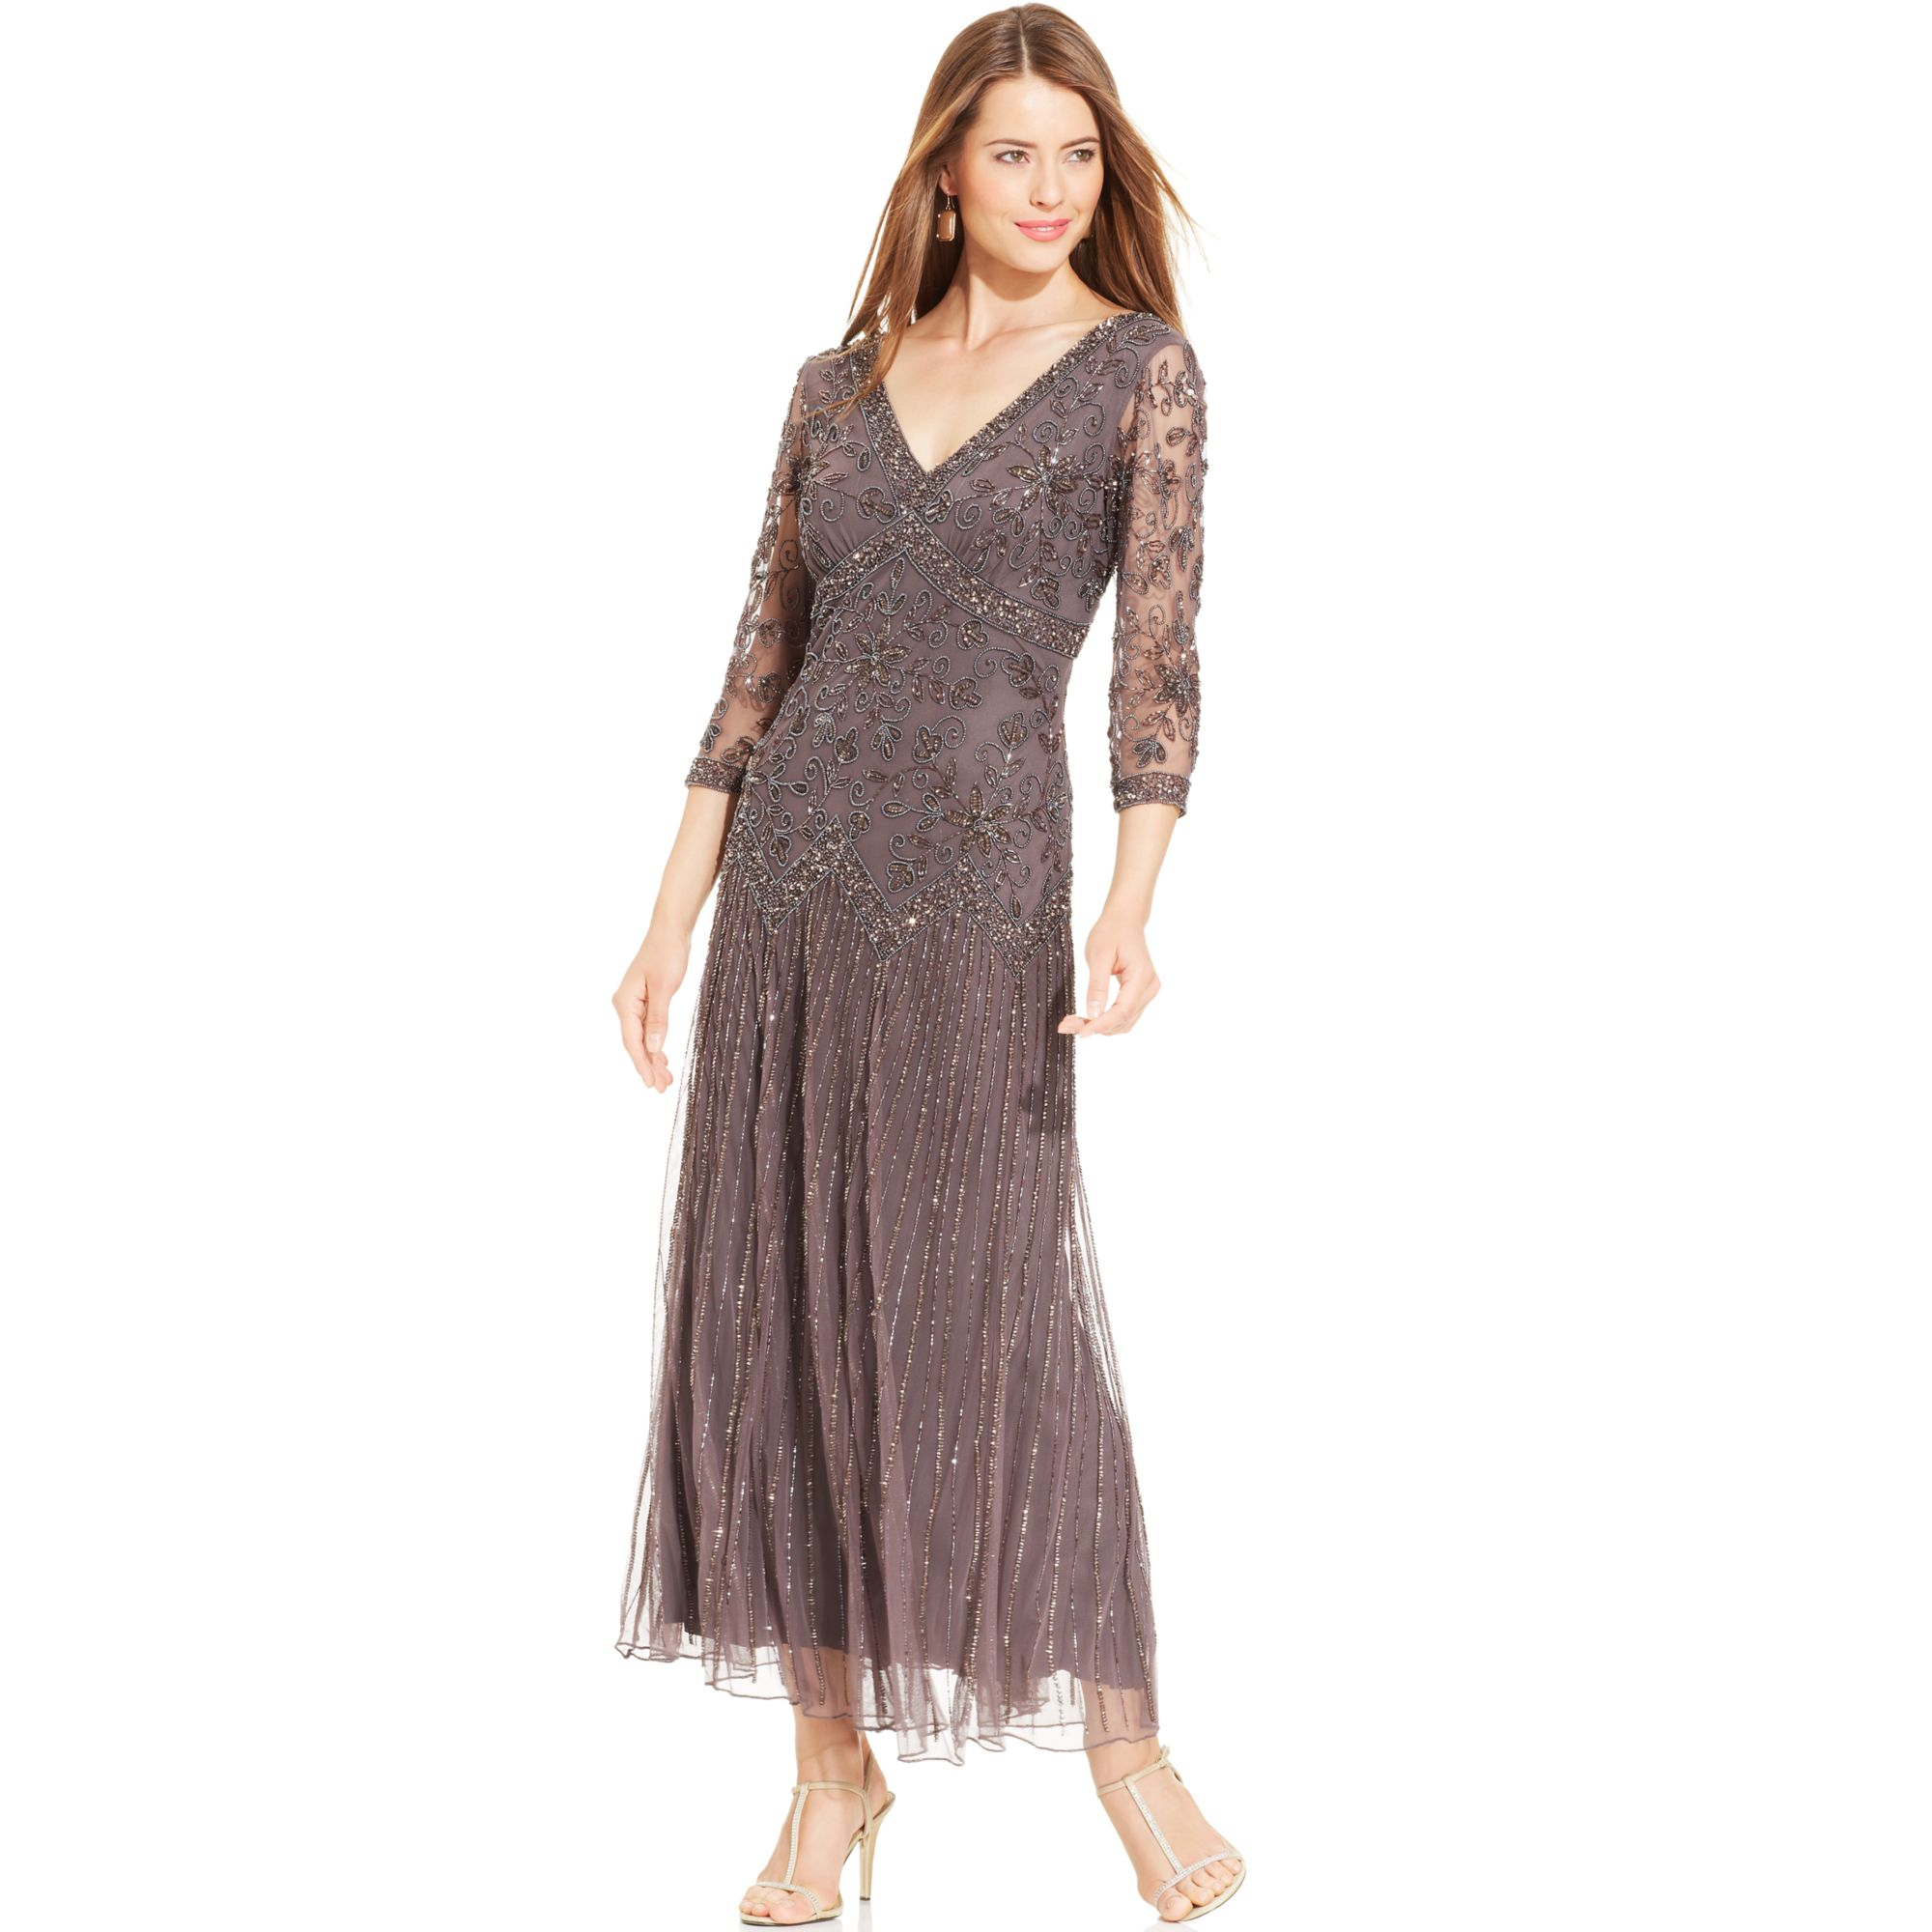 pisarro nights gray three quarter sleeve beaded gown product 1 21784669 0 406608698 normal